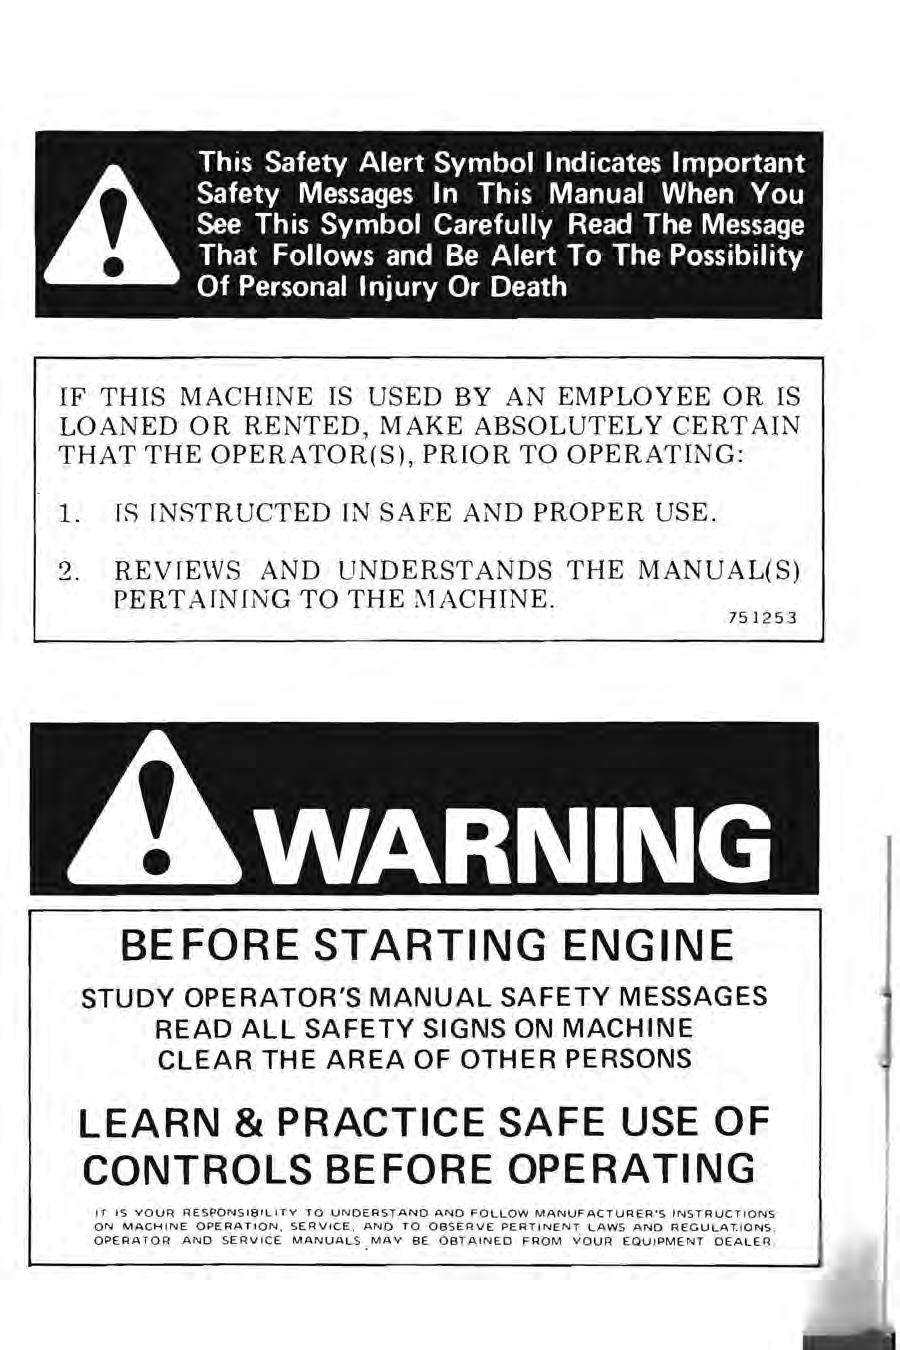 446 Tractor Sin And After Operators Manual No Pdf Case Wiring Diagram If This Machine Is Used By An Employee Or Loaned Rented Make Absolutely